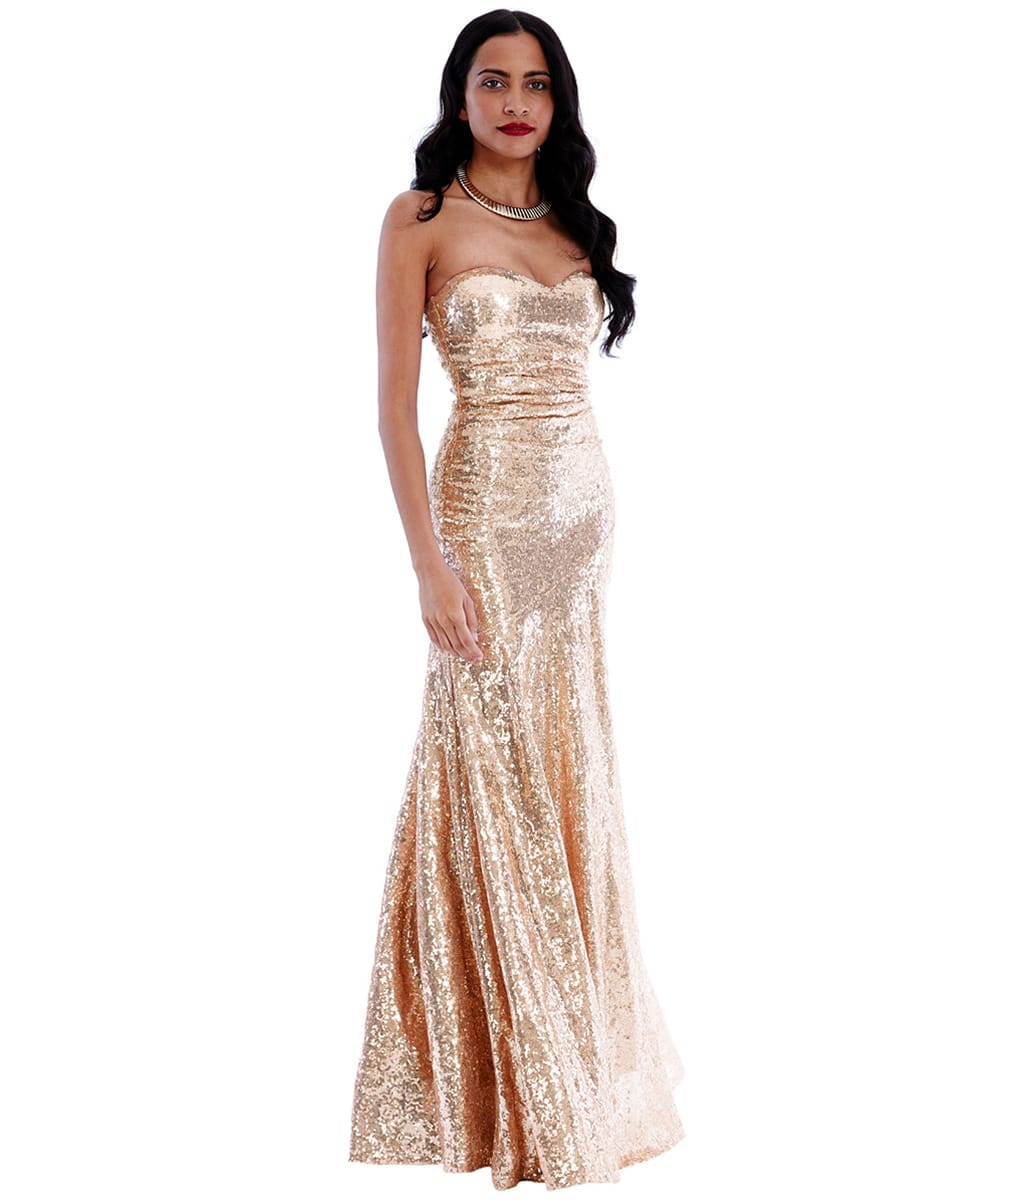 Alila-Chamagne-luxe-sequin-debs-dress-city-goddess